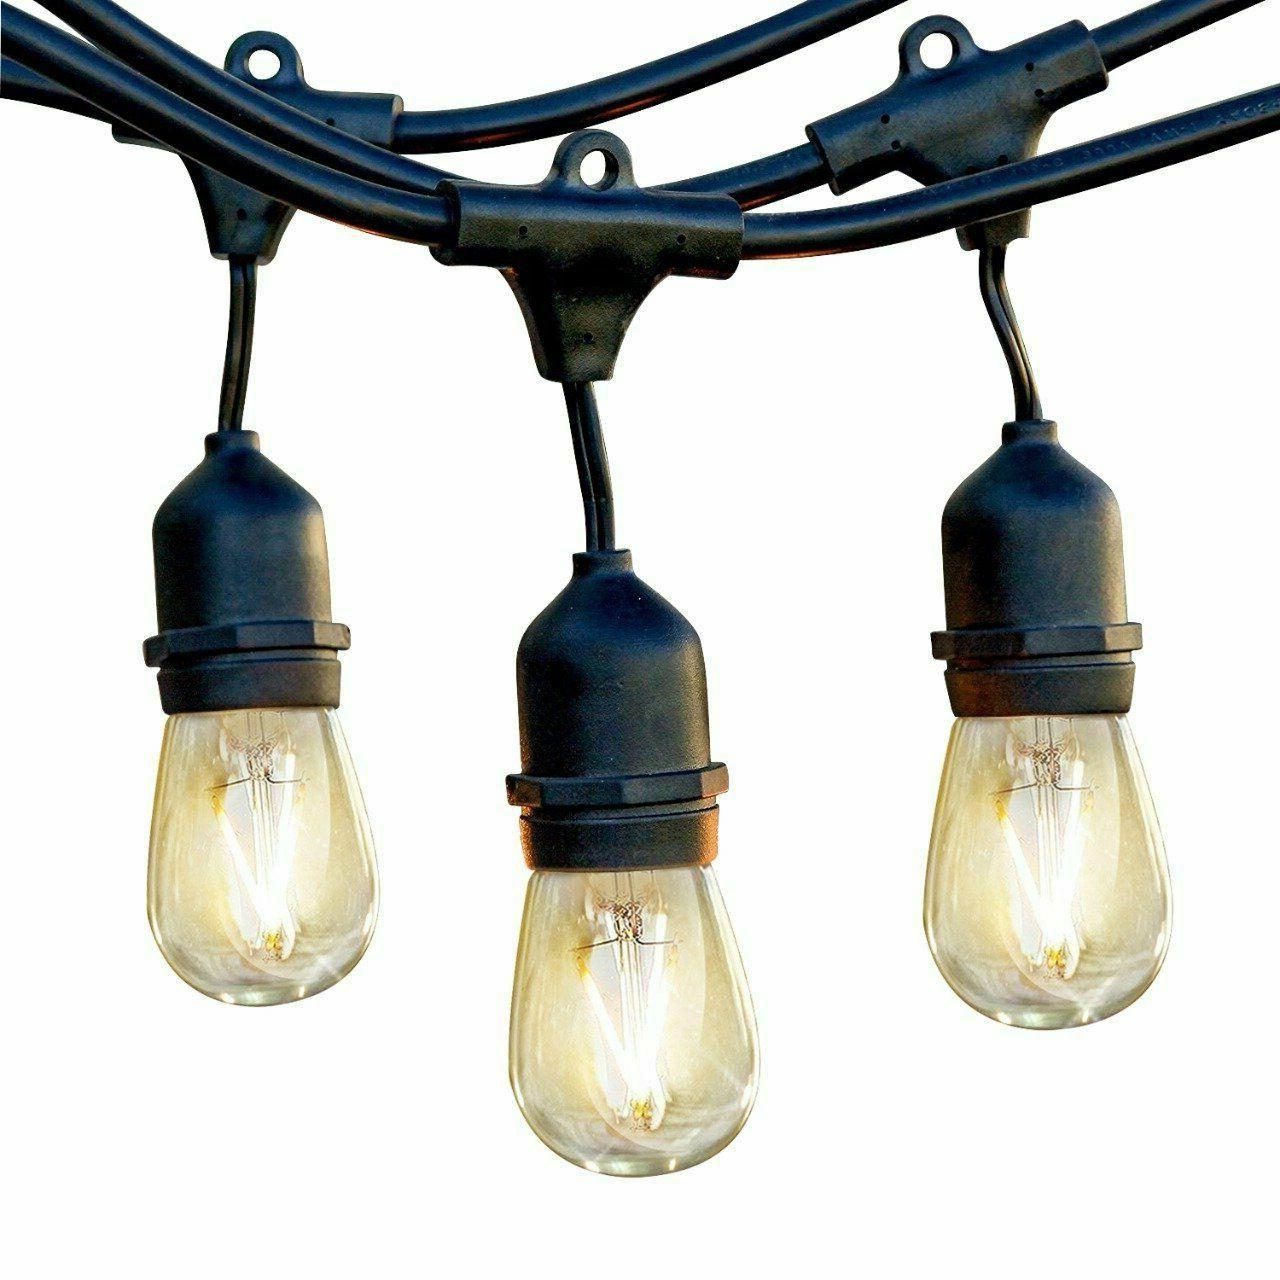 ambience commercial grade light strand